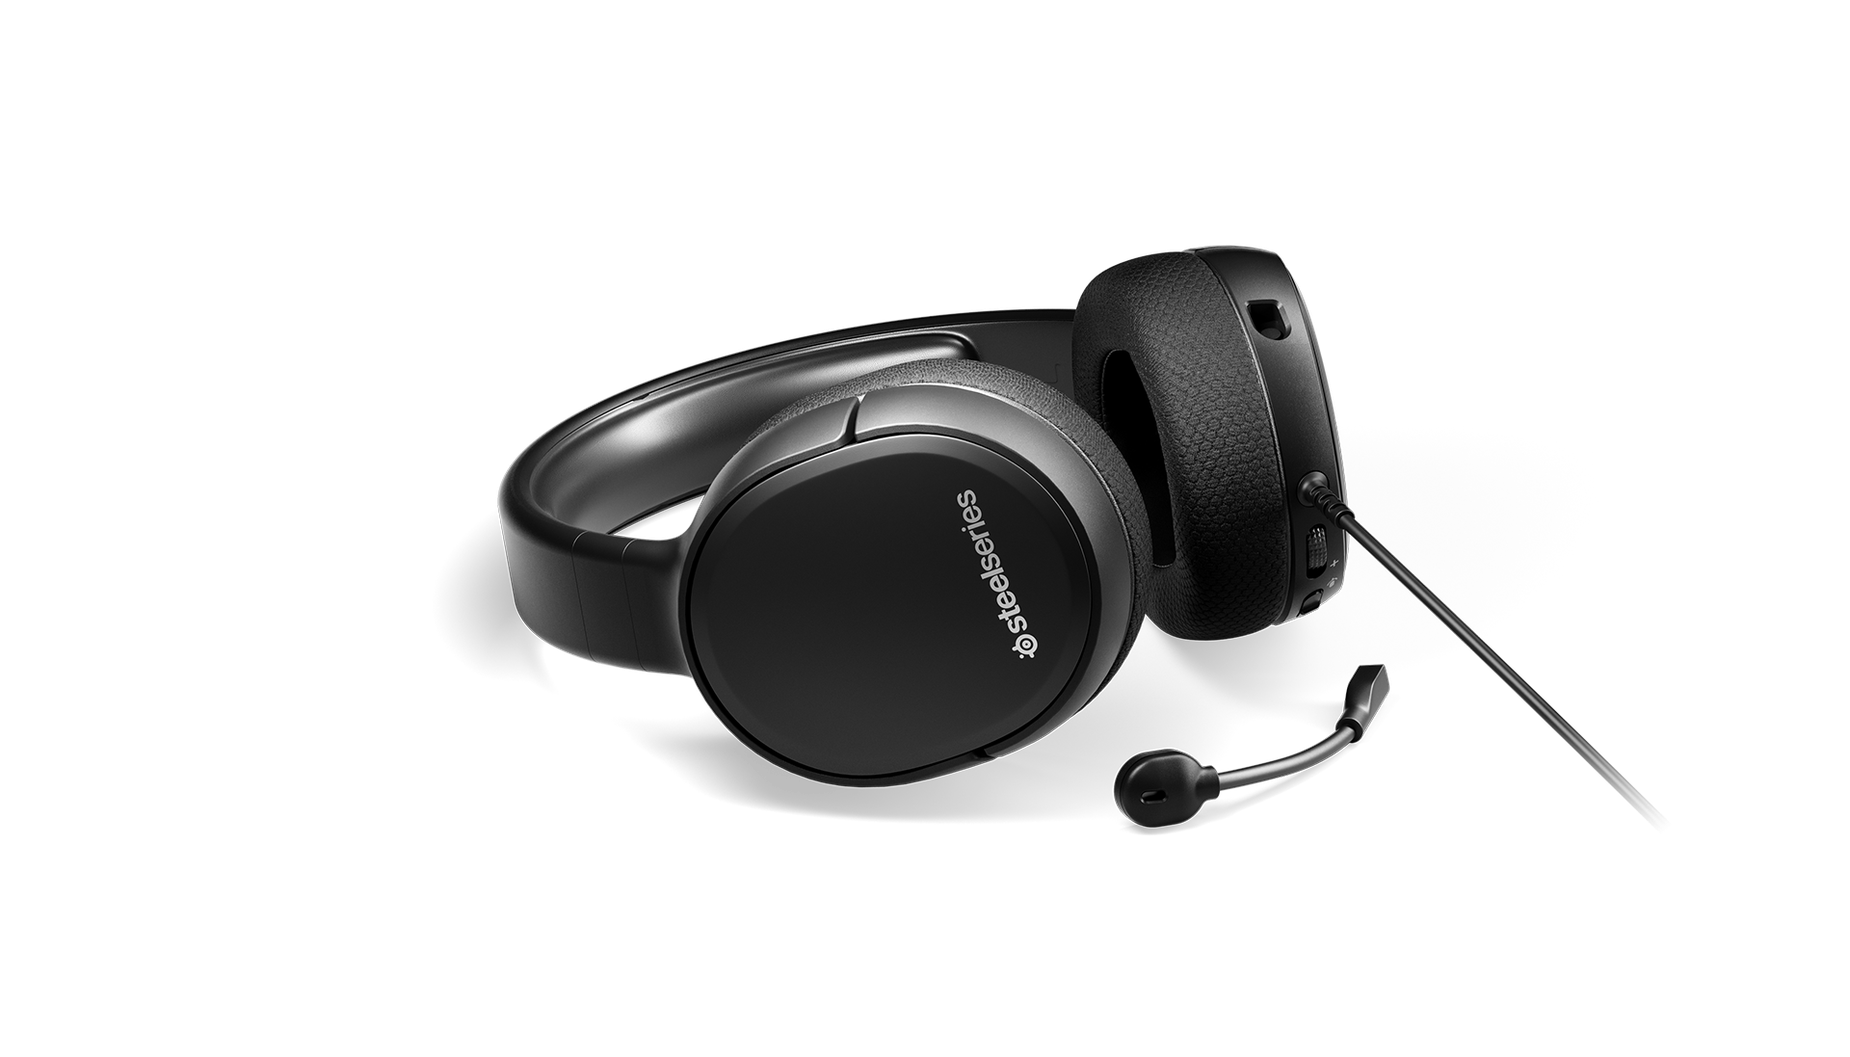 Arctis 1 gaming headset on surface with microphone detached